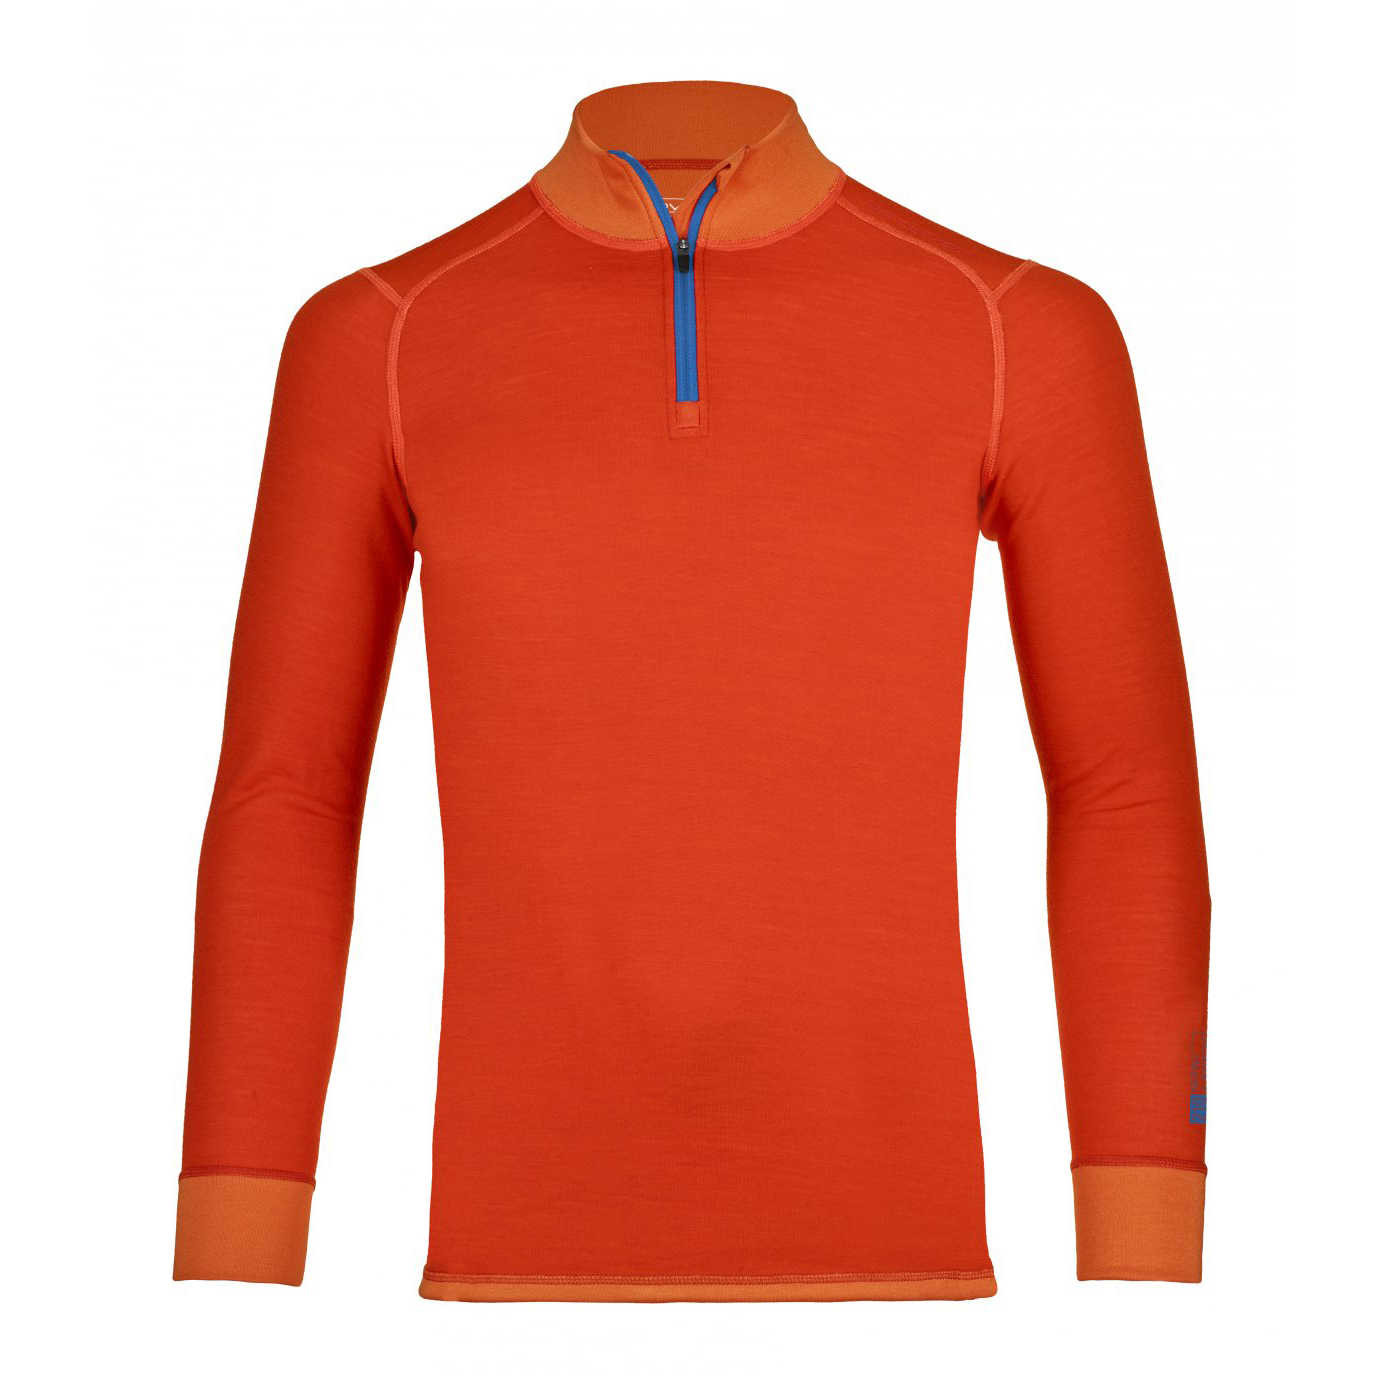 Sous vêtement 210 Supersoft Zip Neck M - Crazy Orange